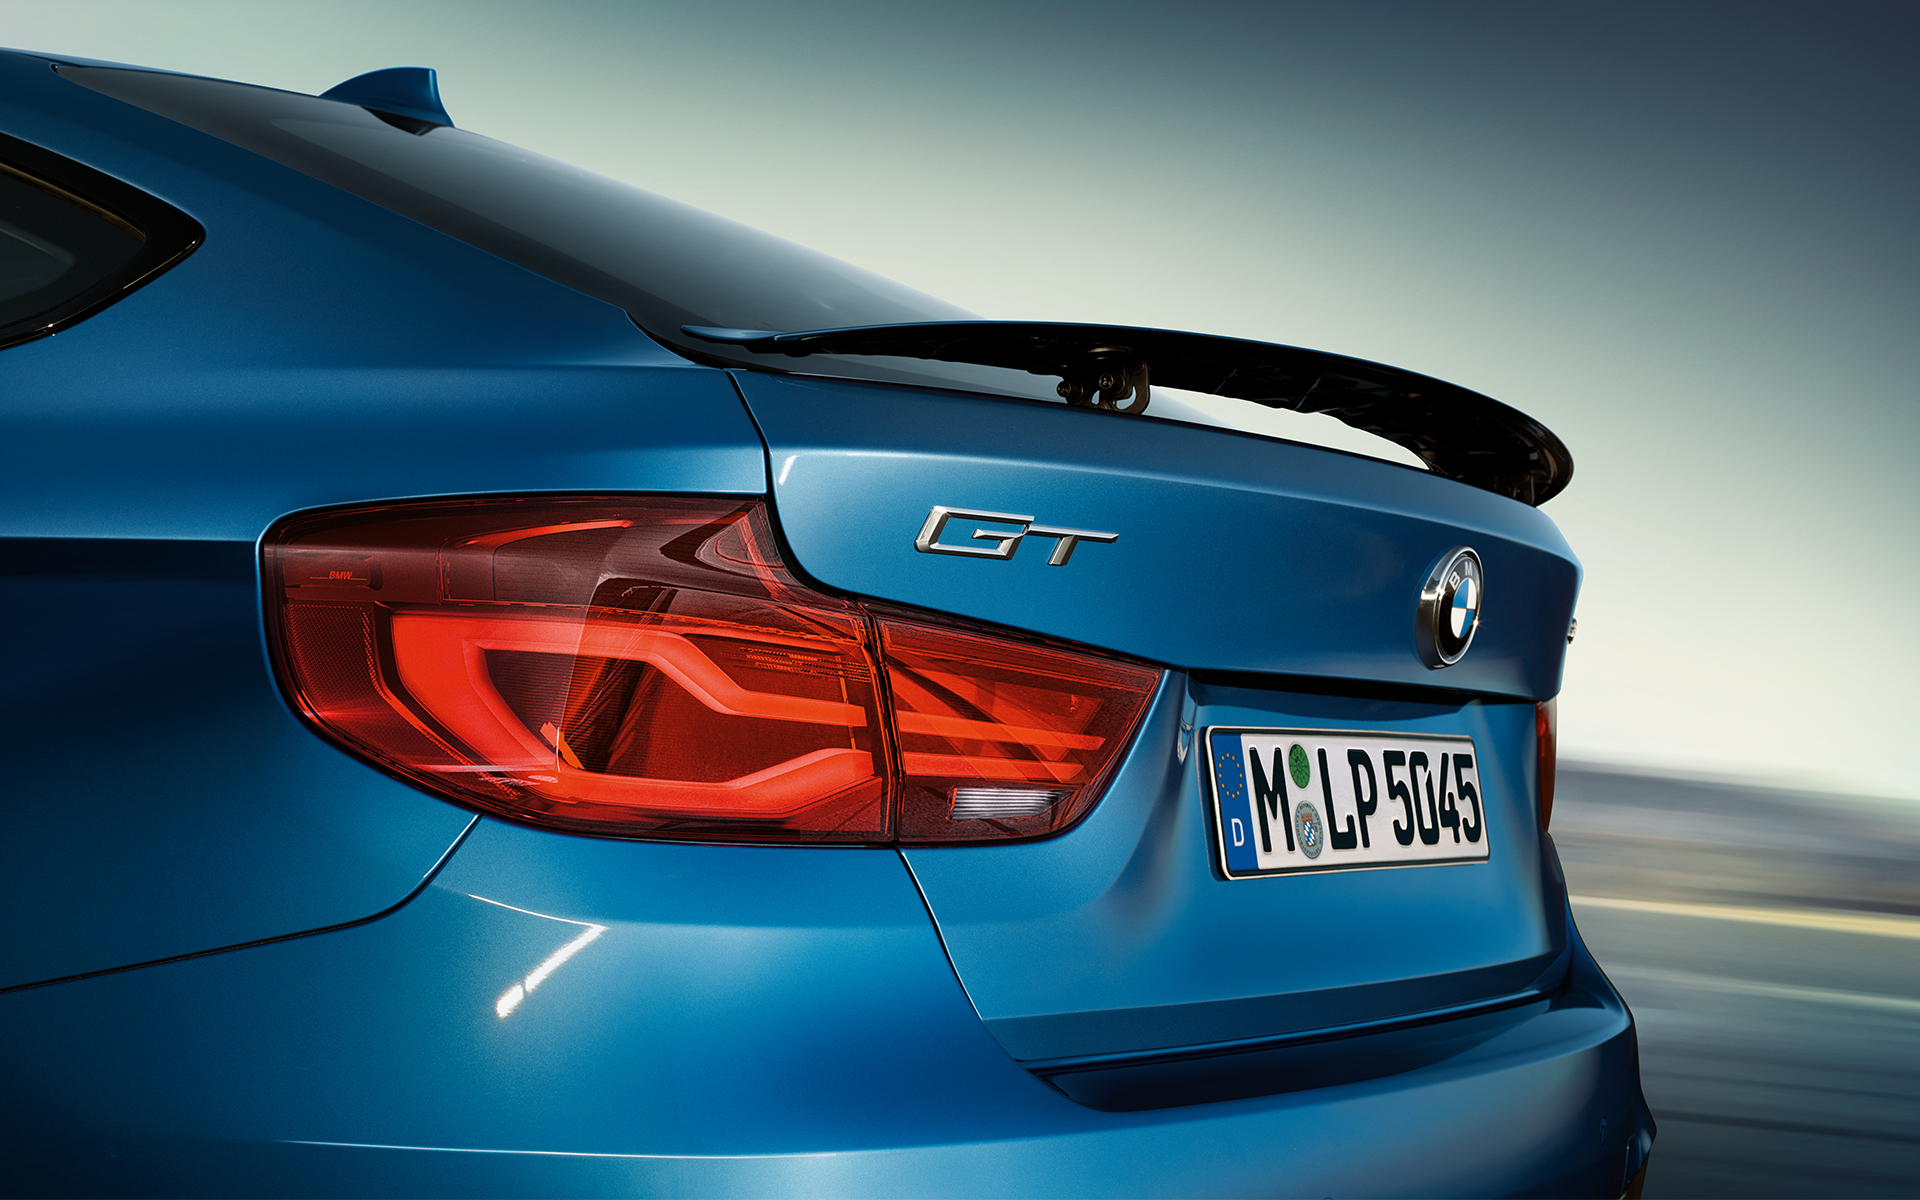 BMW 3 Series Gran Turismo - Rear lights